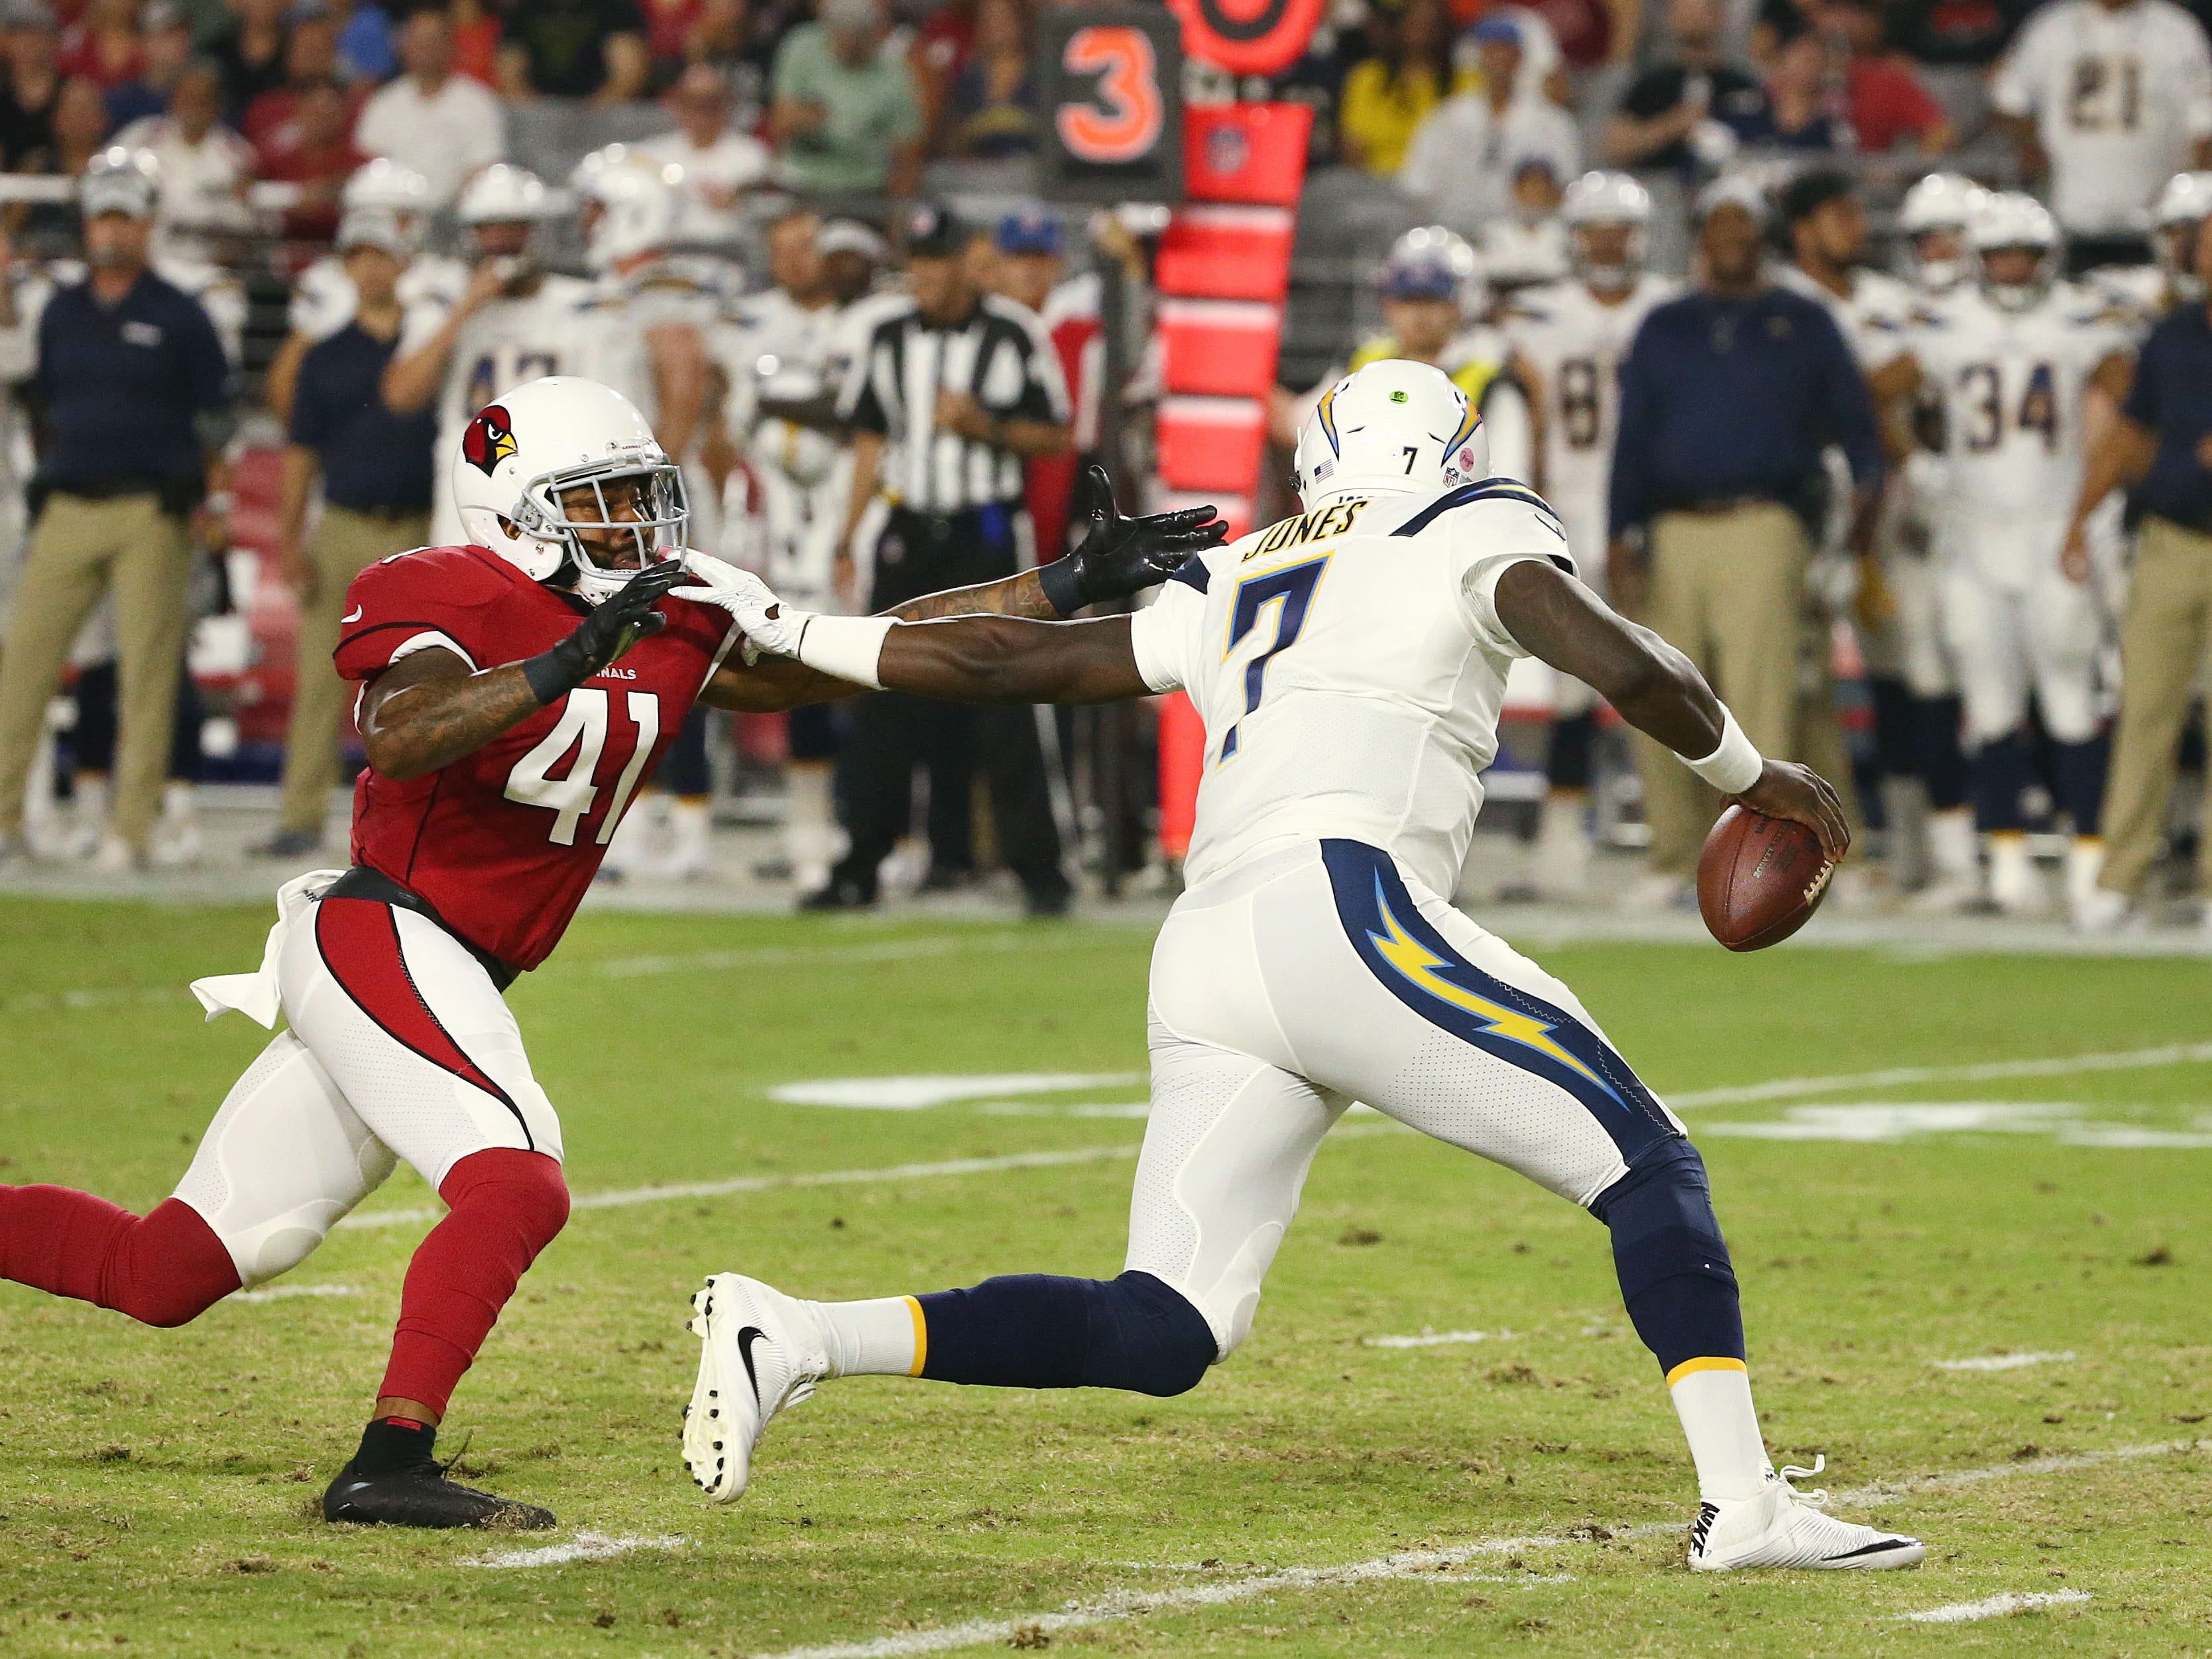 Arizona Cardinals Antoine Bethea chases L.A. Chargers quarterback Cardale Jones in the first half during a preseason NFL football game on Aug. 11, 2018 at University of Phoenix Stadium in Glendale, Ariz.